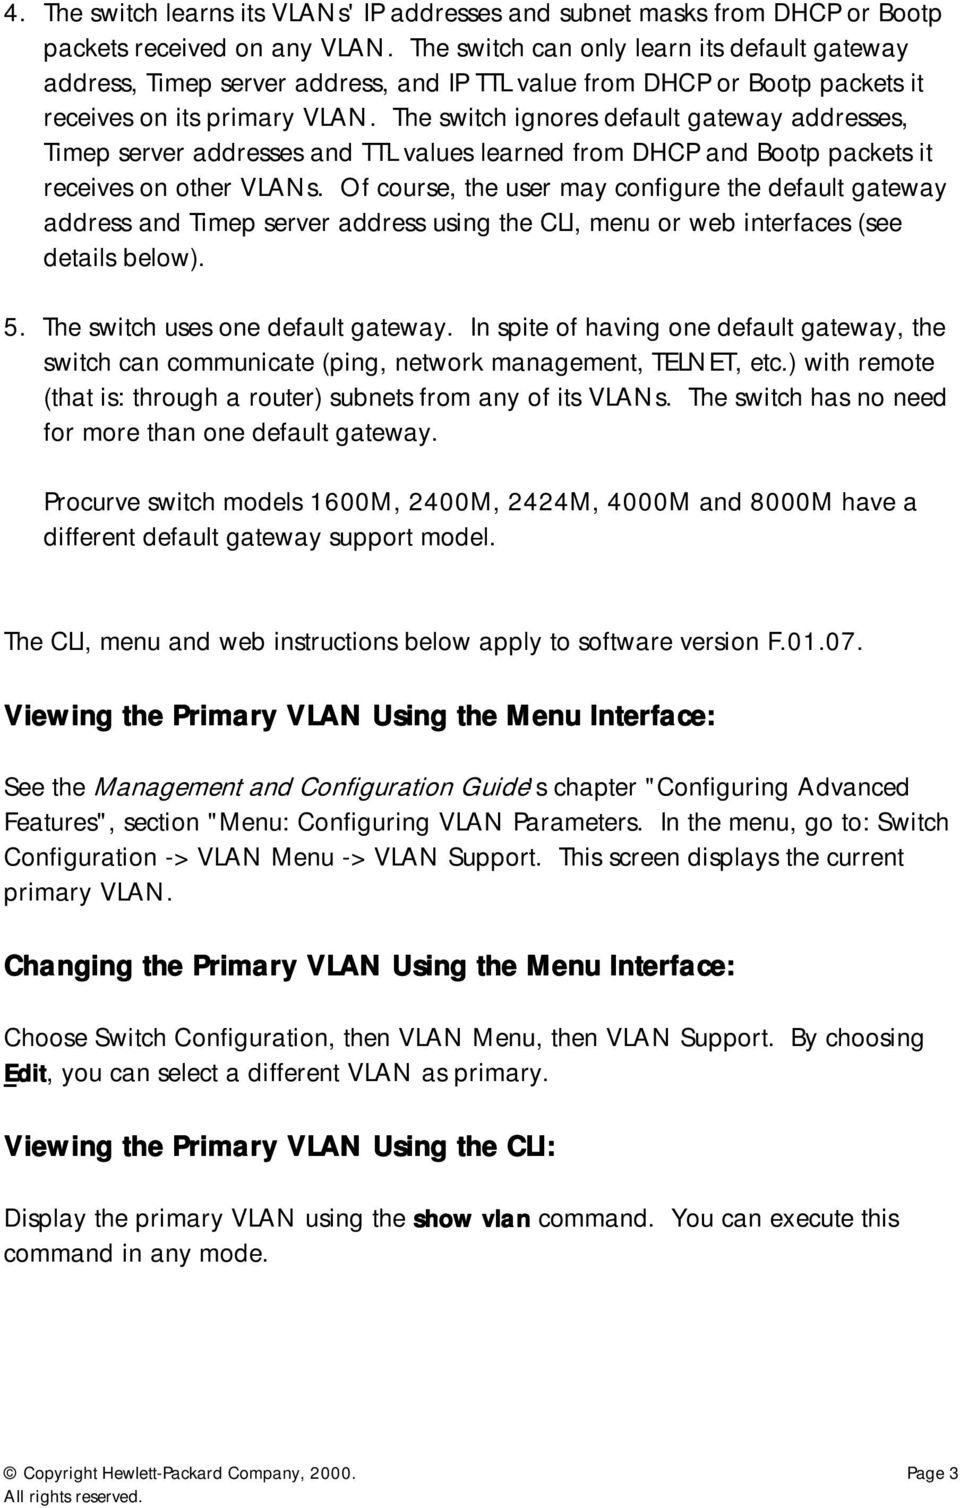 Primary VLAN  This document shows how to view and change the